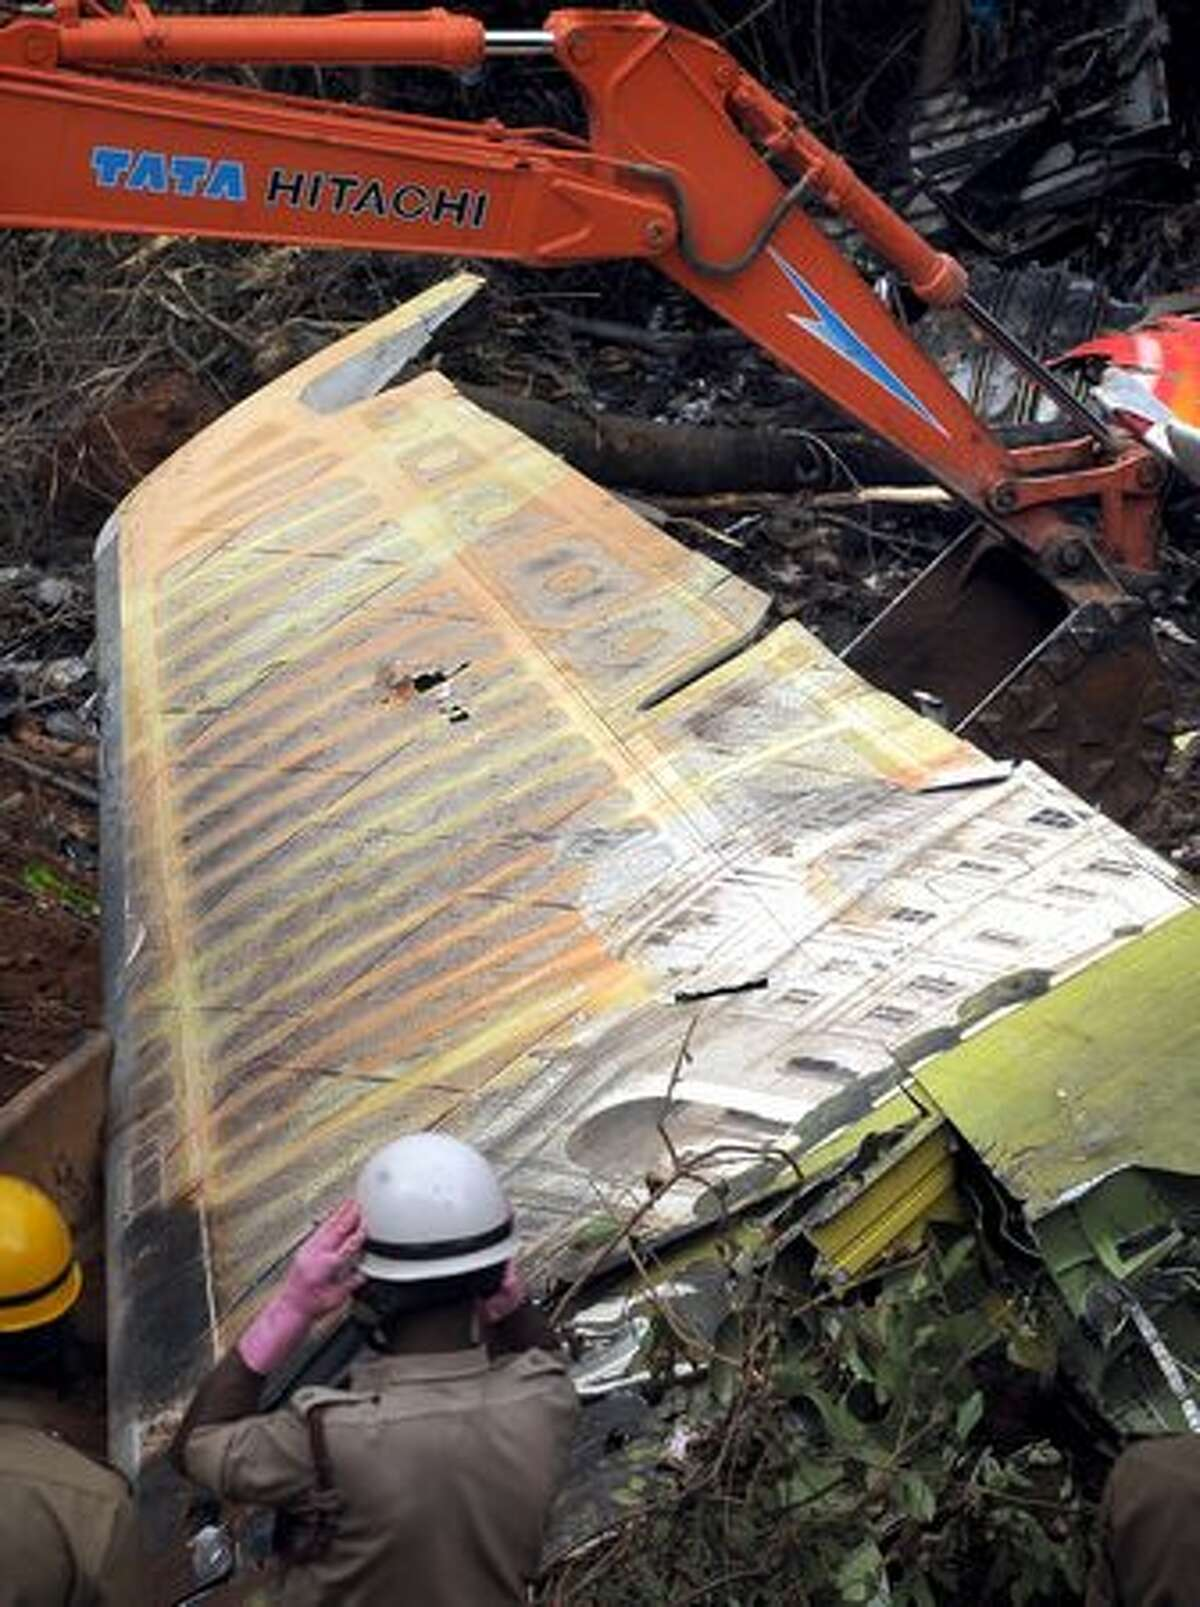 Indian firefighters work at the plane crash site of the Air India Express Boeing 737-800 in Mangalore. Investigators combed the wreckage of an Air India Express jet that crashed into a forested gorge with the loss of 158 lives, searching for the